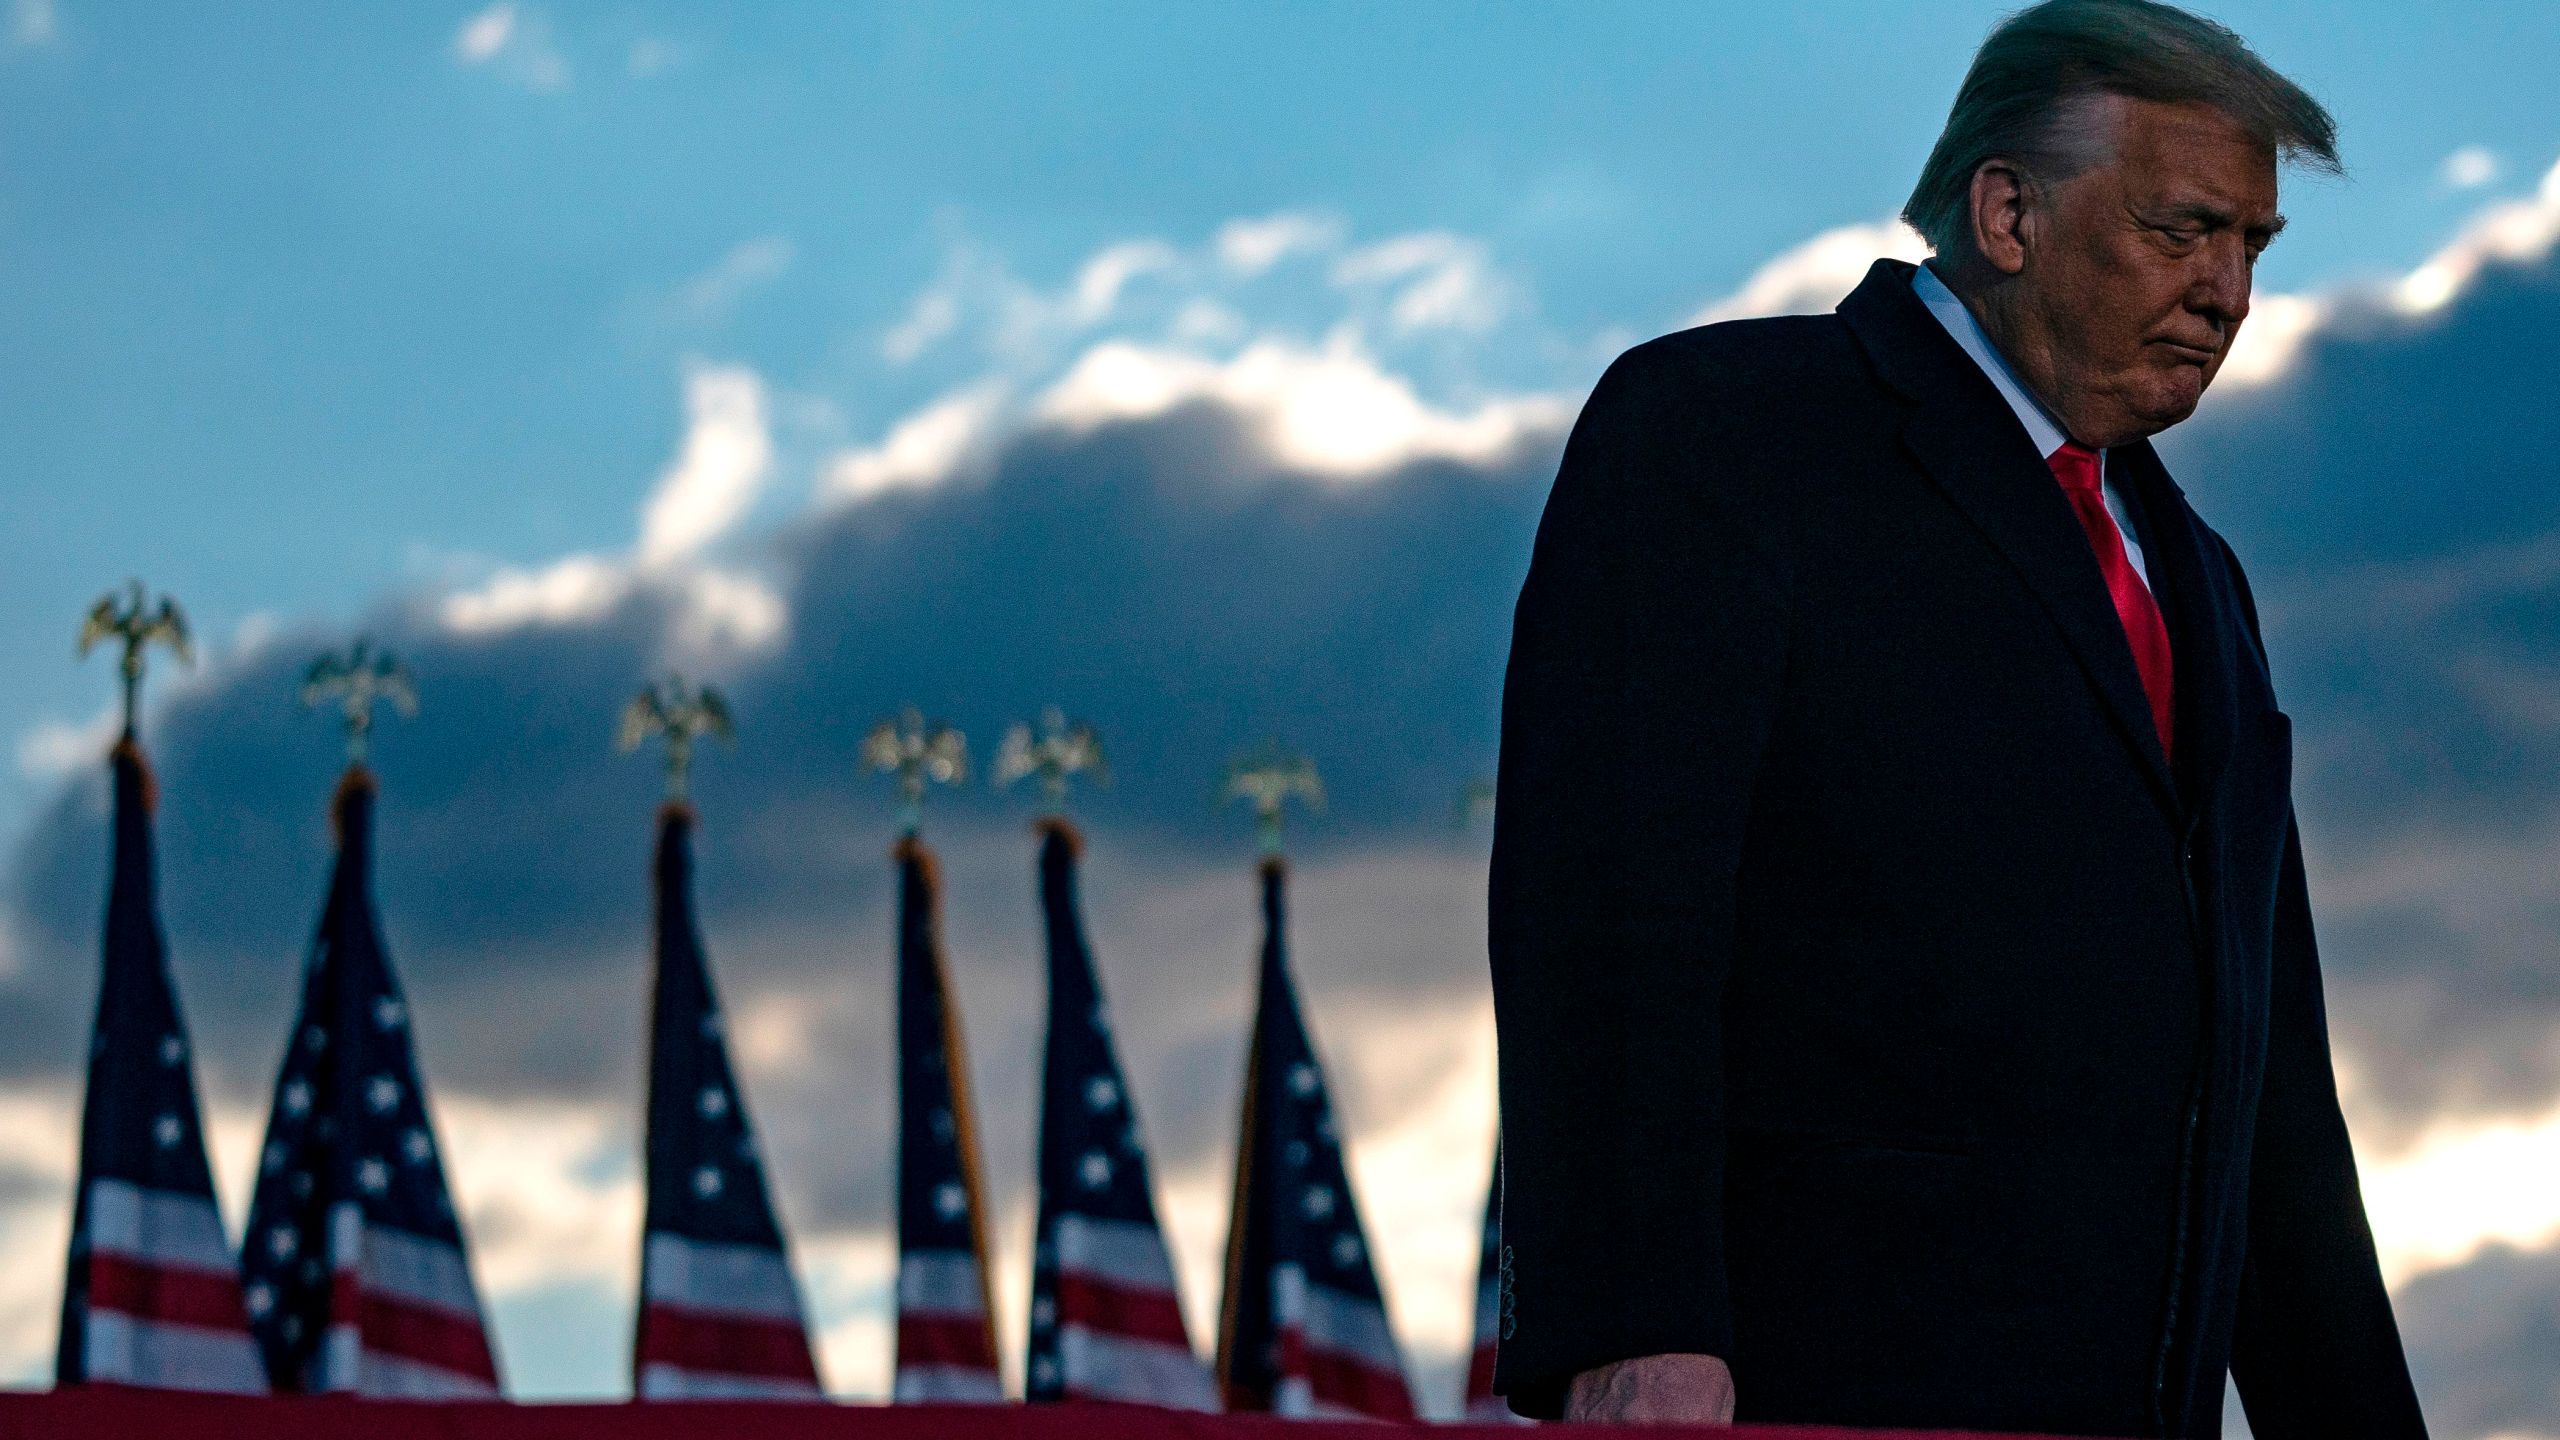 Outgoing US President Donald Trump addresses guests at Joint Base Andrews in Maryland on January 20, 2021. (ALEX EDELMAN/AFP via Getty Images)